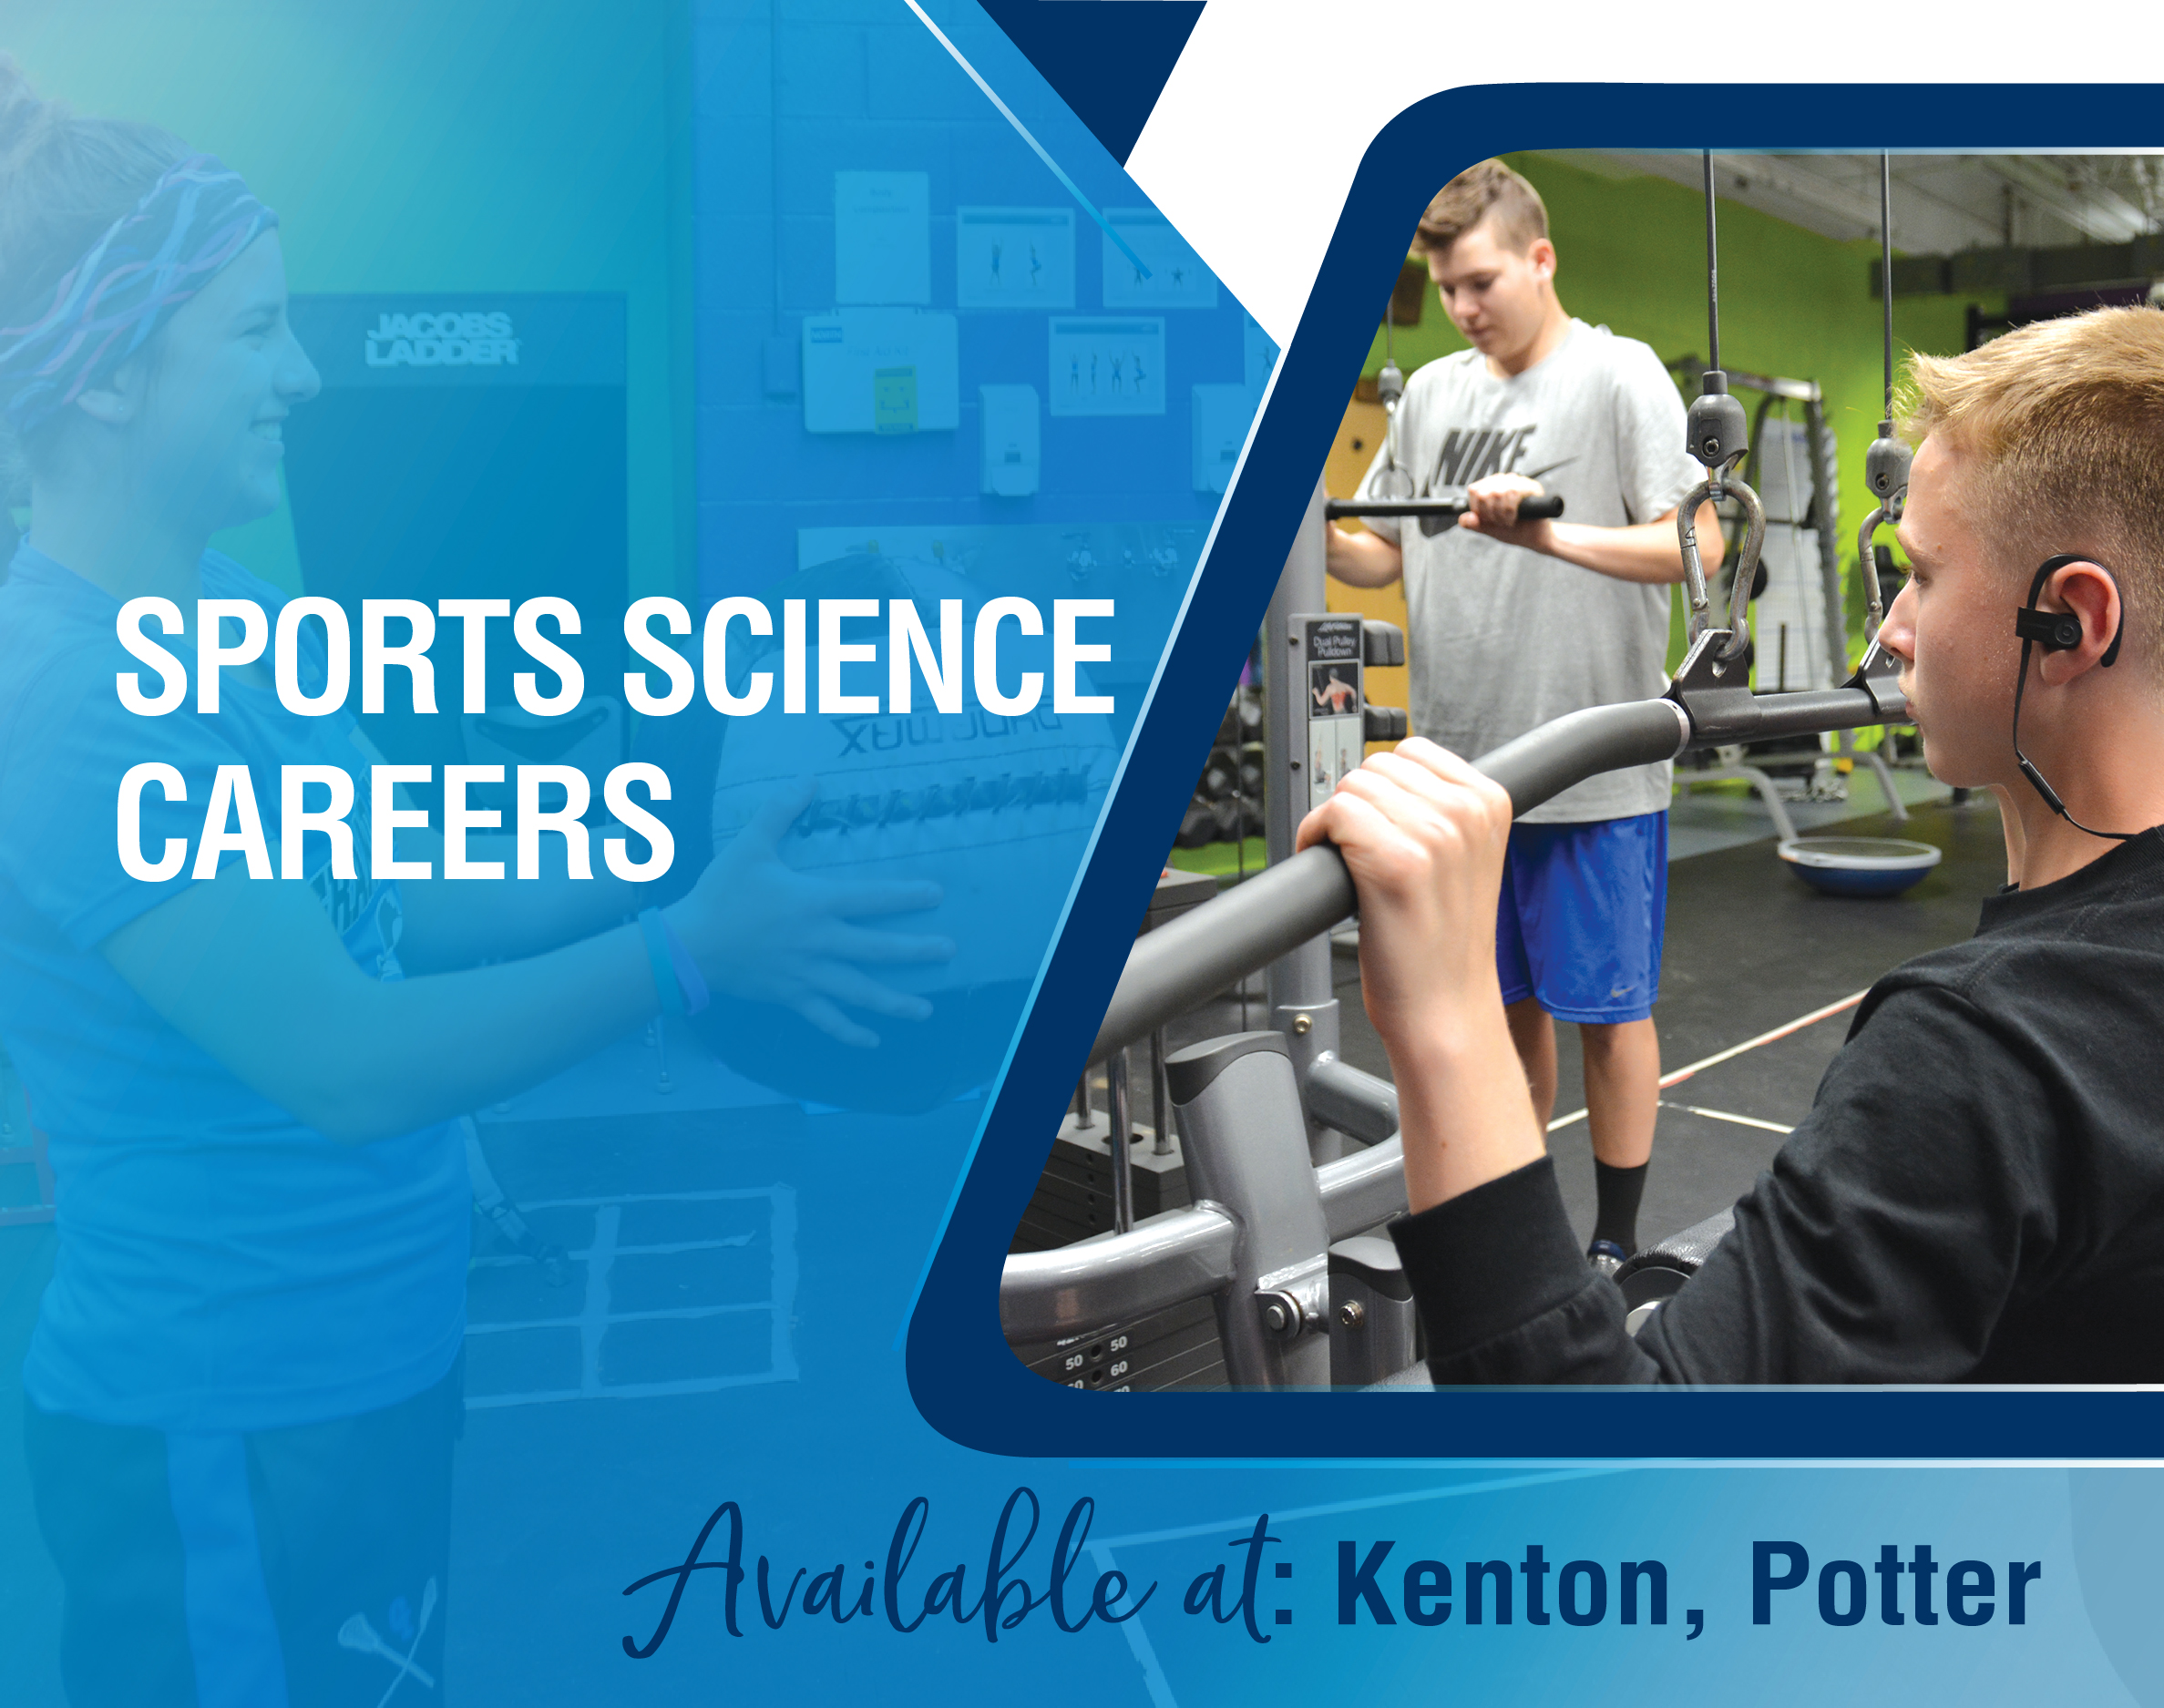 Sports Science Careers